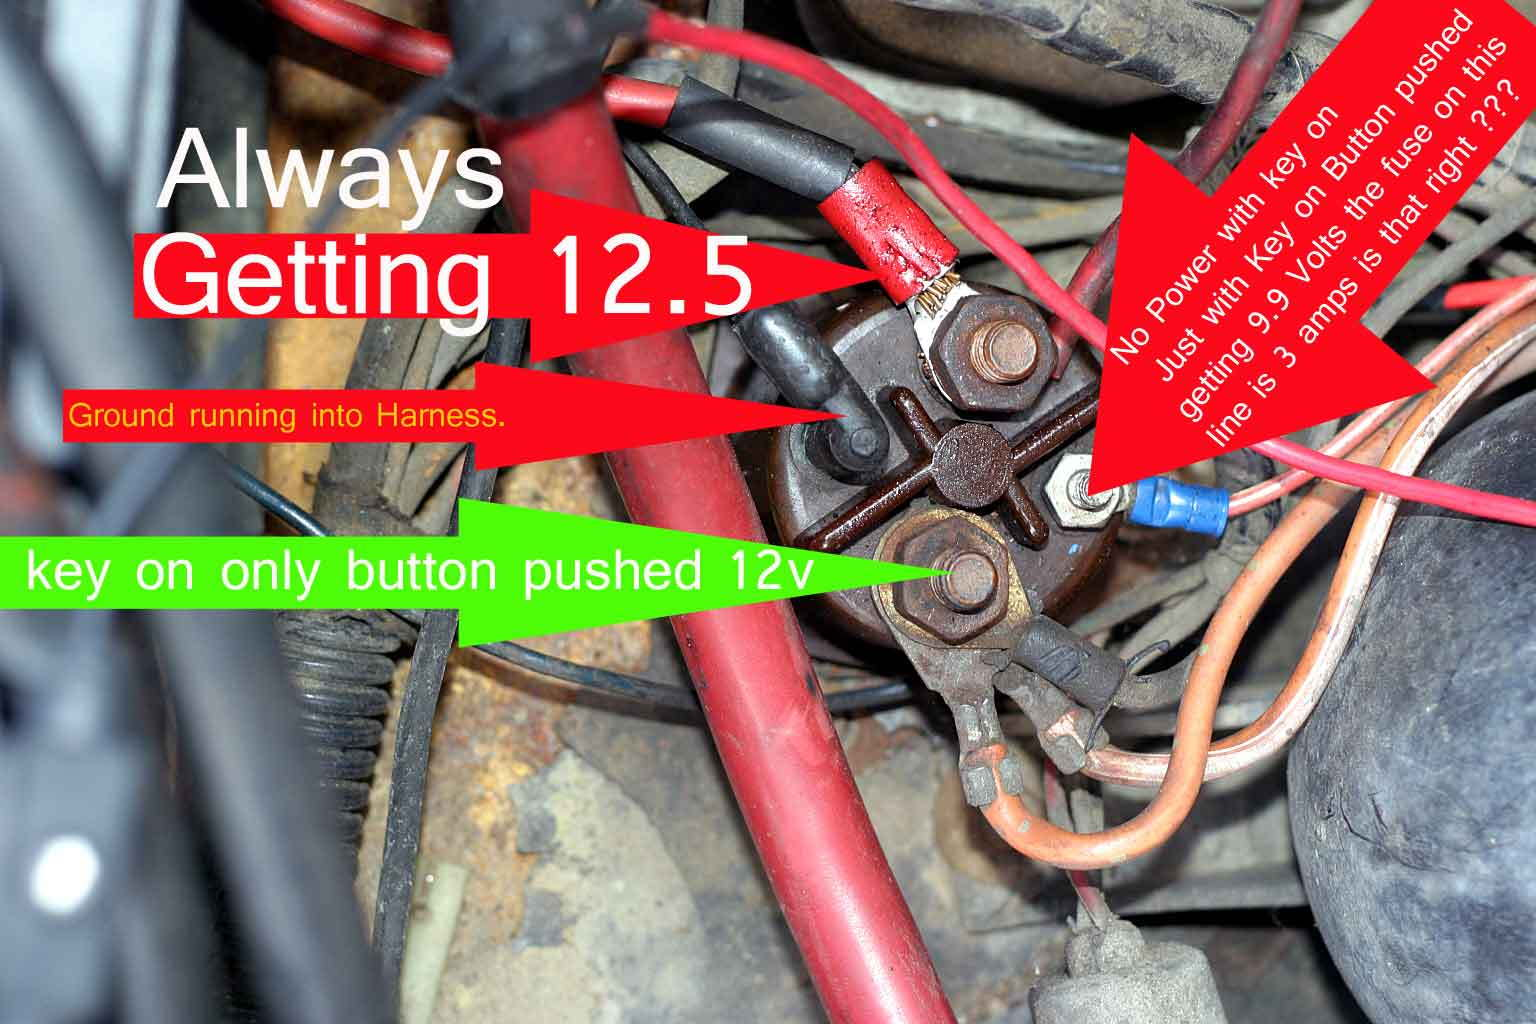 2000 Ford F350 Fuse Diagram Simple Guide About Wiring Transfer Case 7 3 Idi Glow Plug 2001 F250